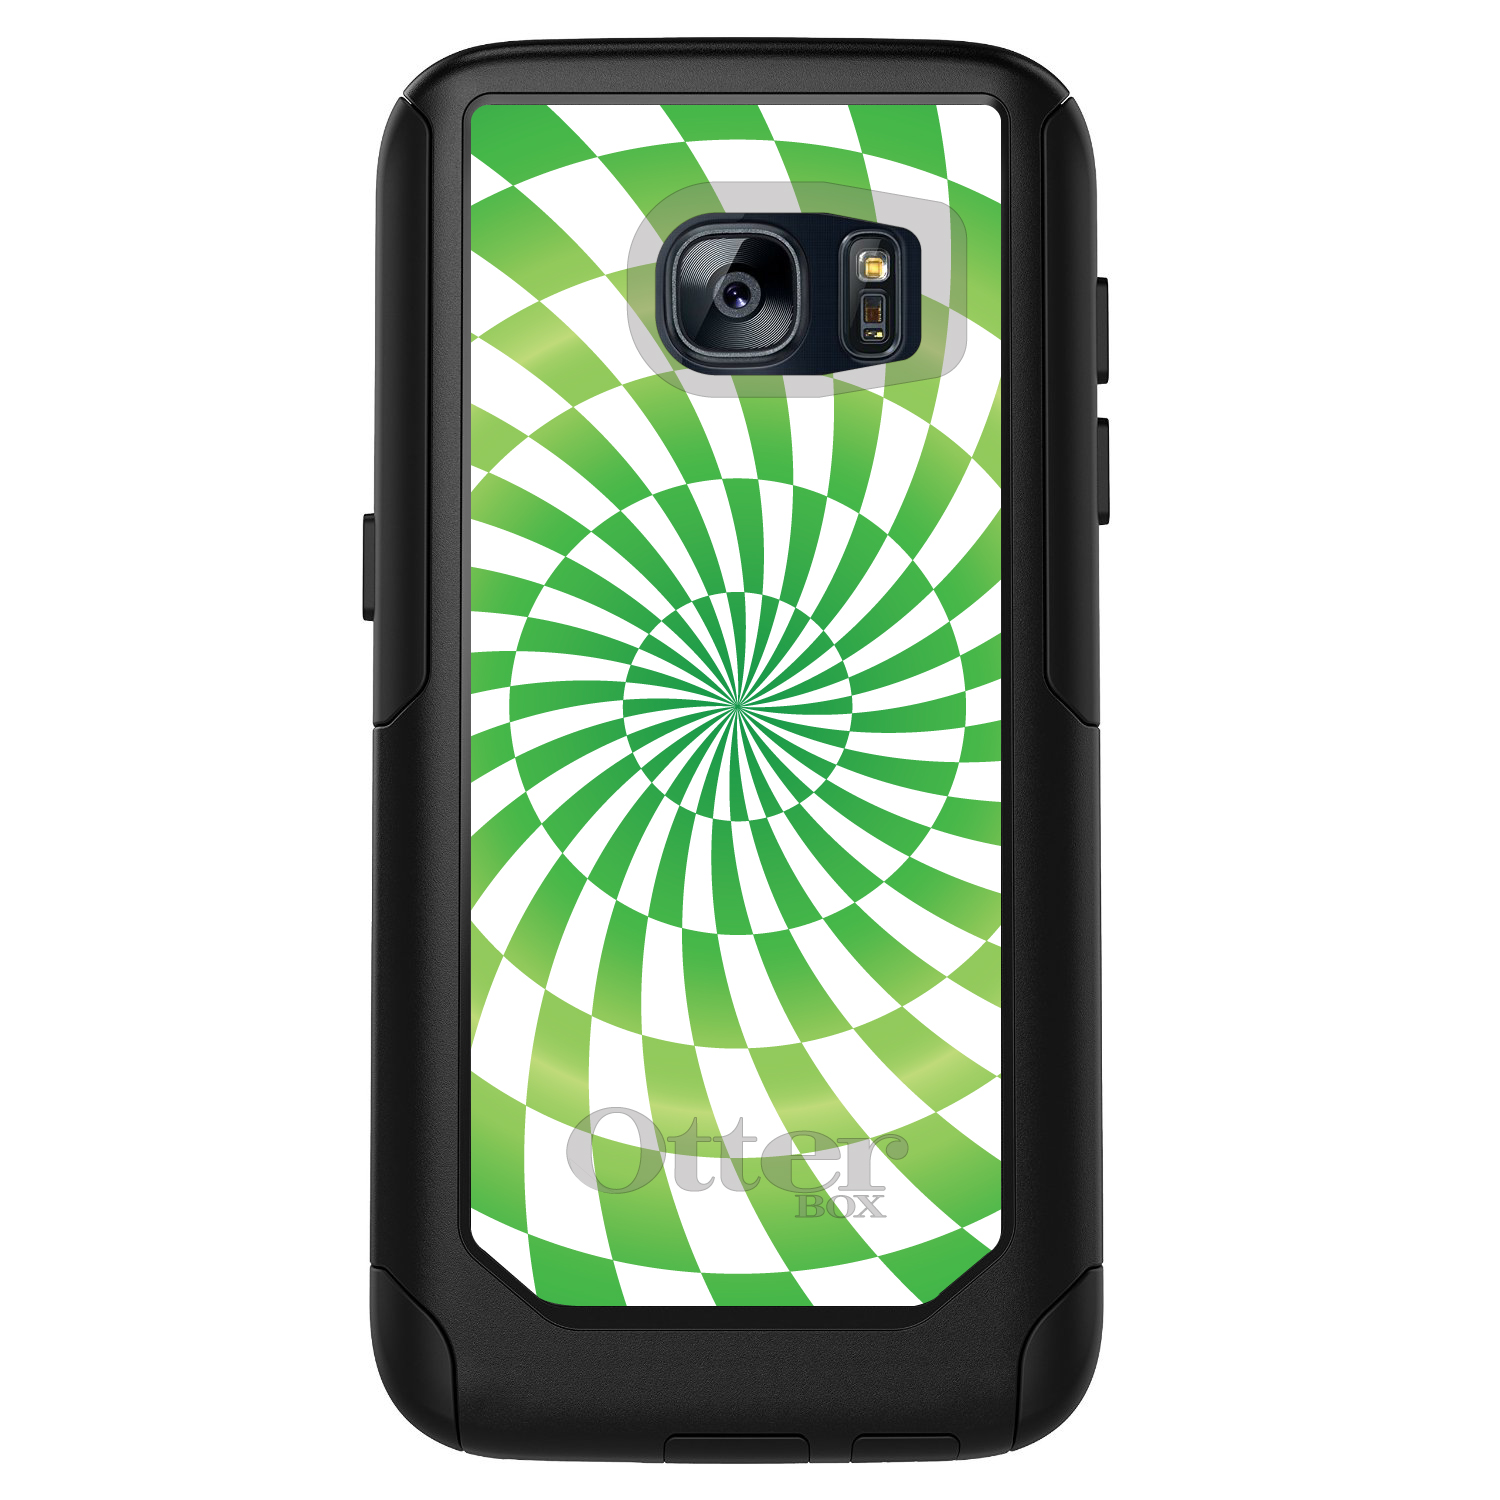 DistinctInk™ Custom Black OtterBox Commuter Series Case for Samsung Galaxy S7 - Green White Swirl Geometric